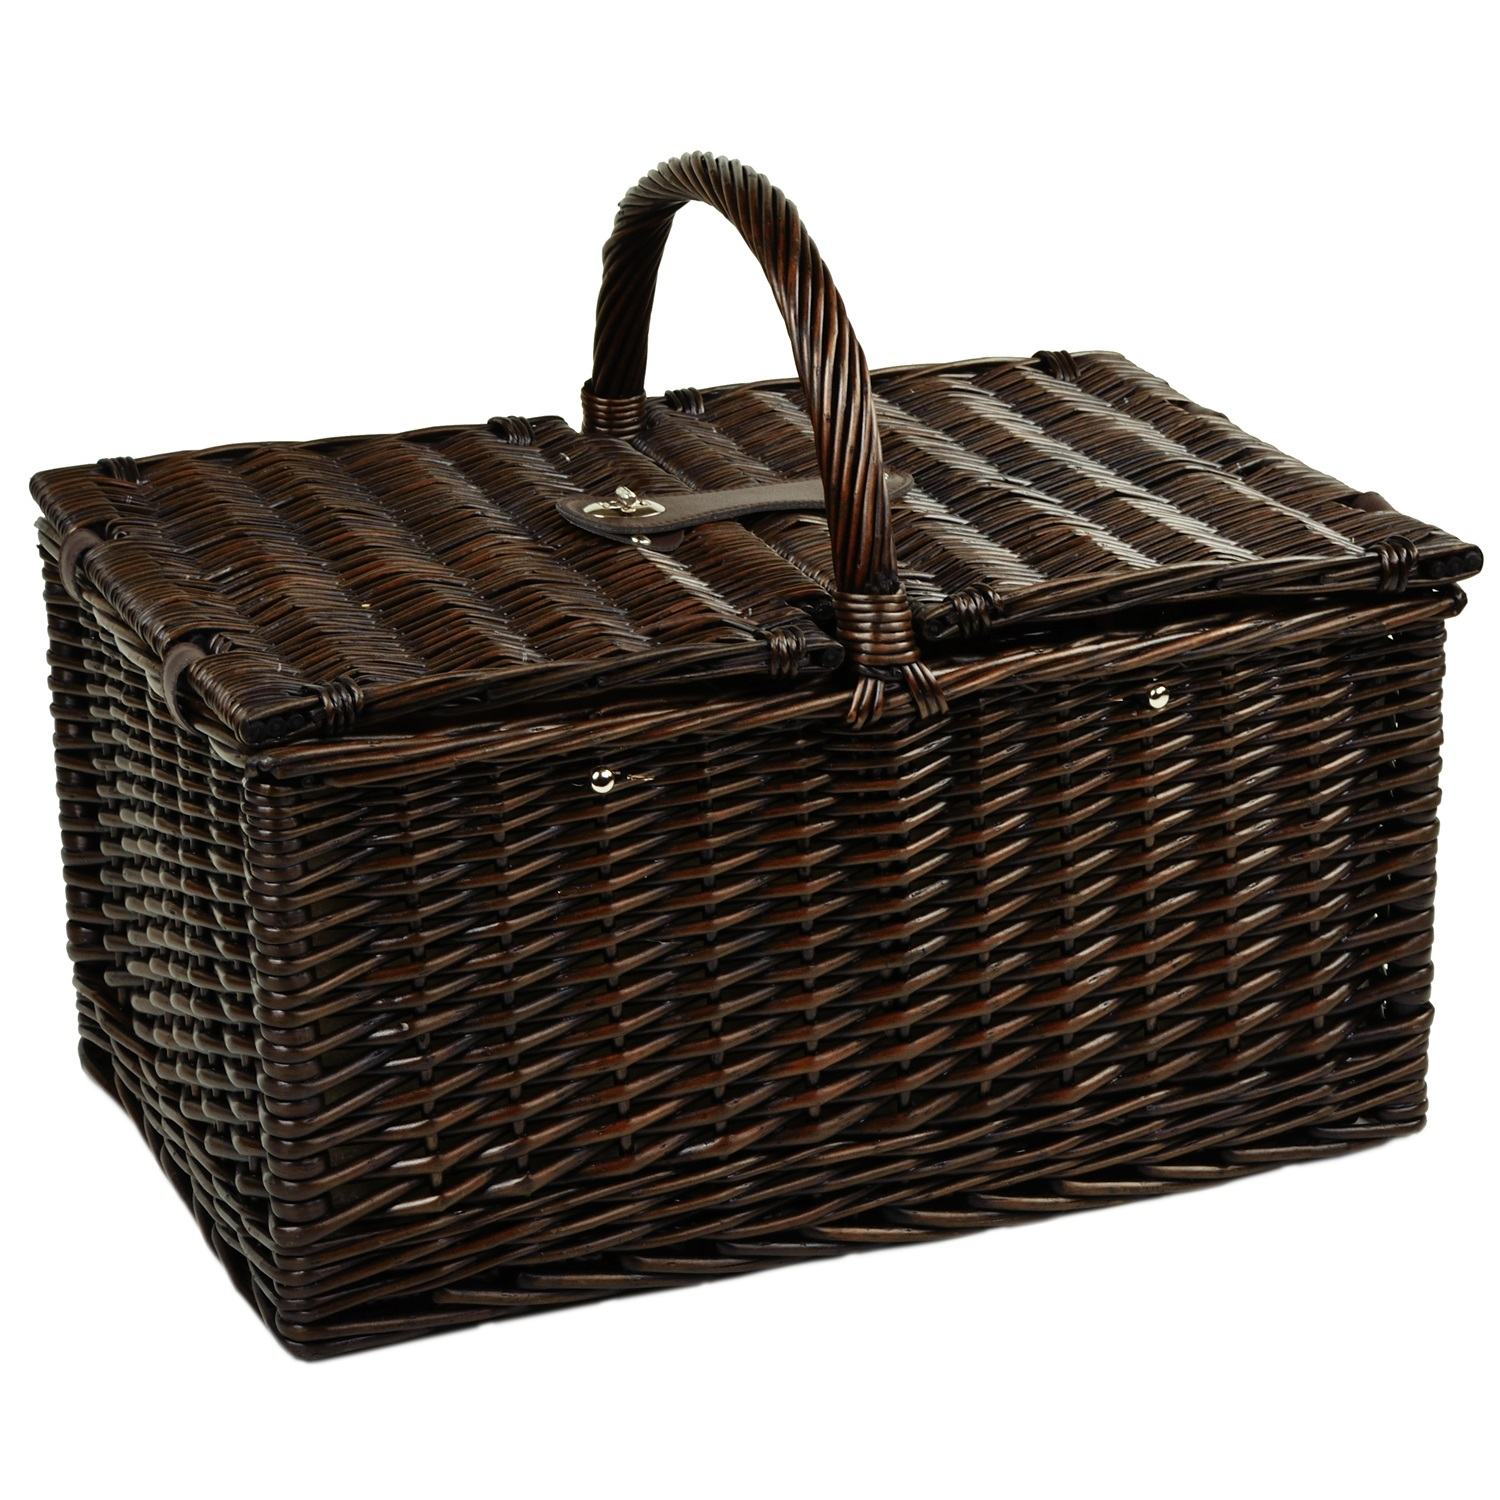 Picnic At Ascot Surrey Willow Picnic Basket With Service For